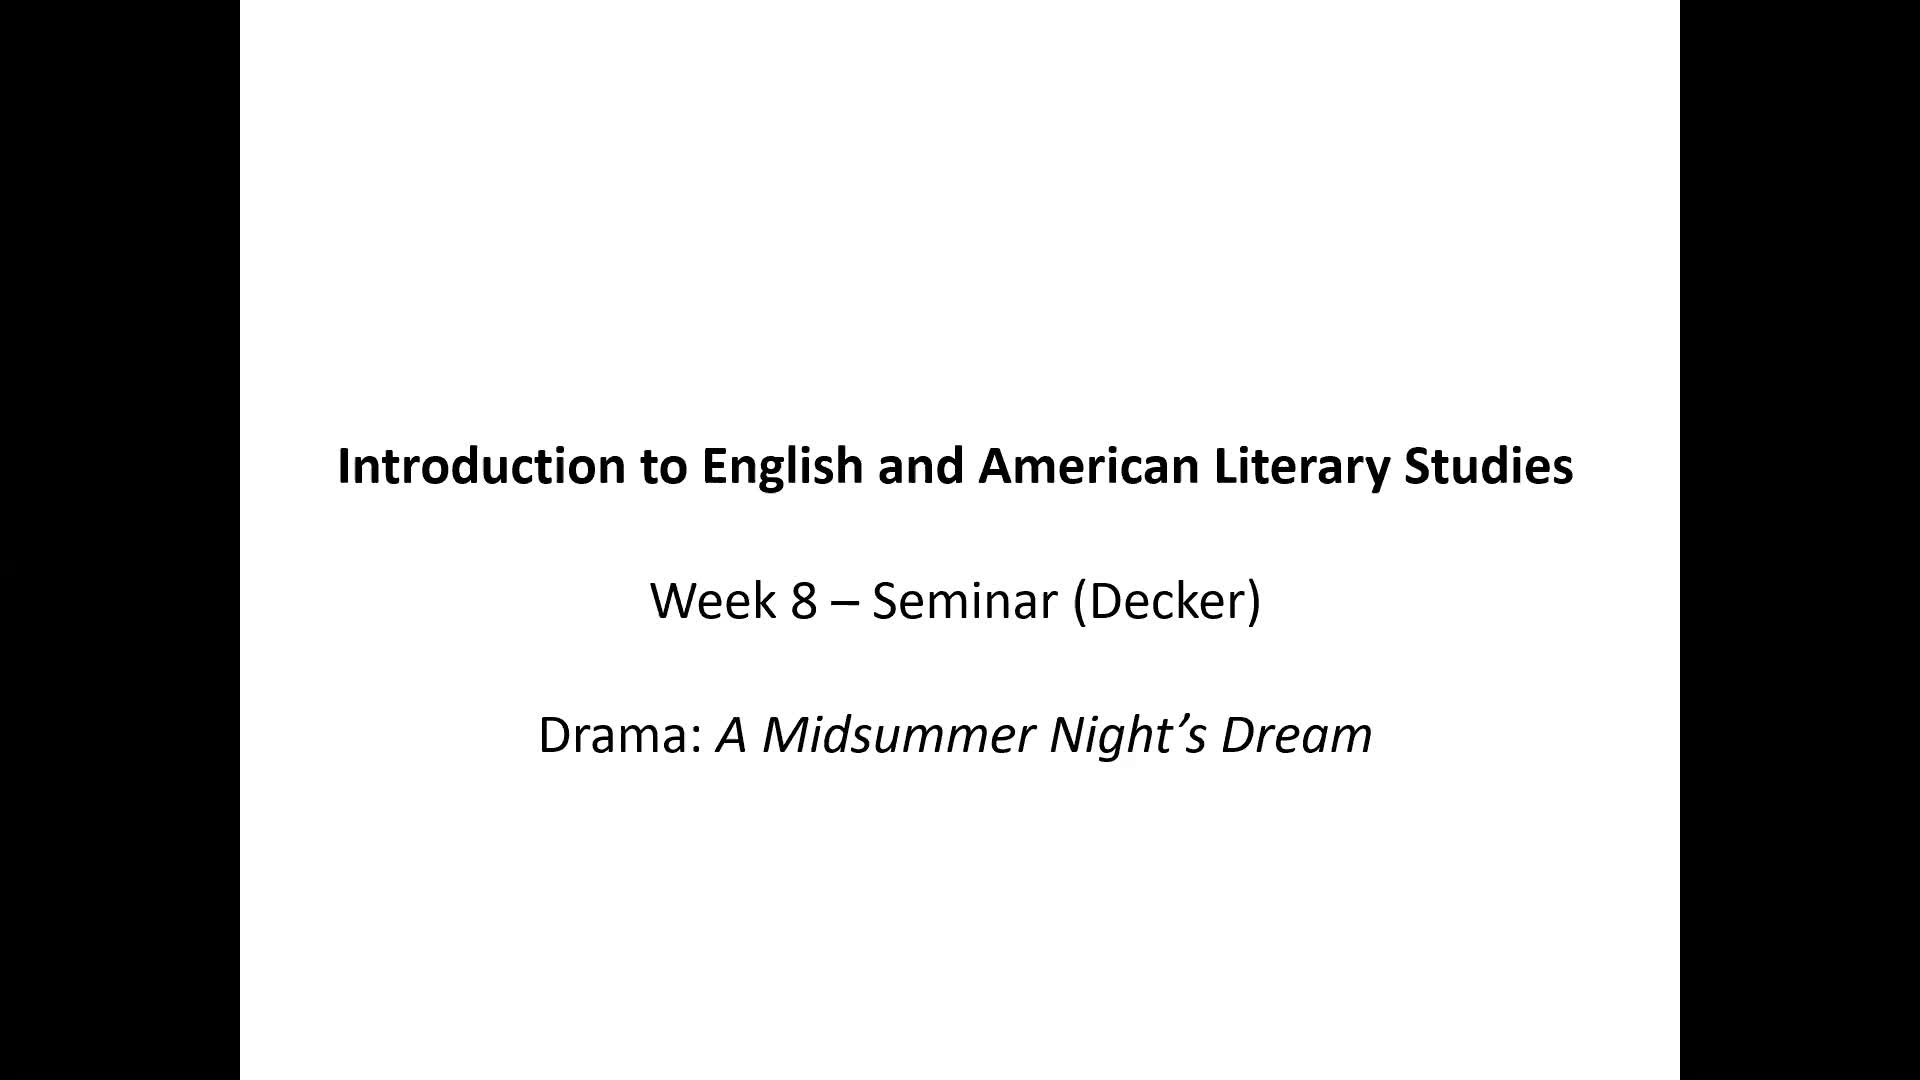 Introduction to English and American Literary Studies - Seminar Decker - Week 8